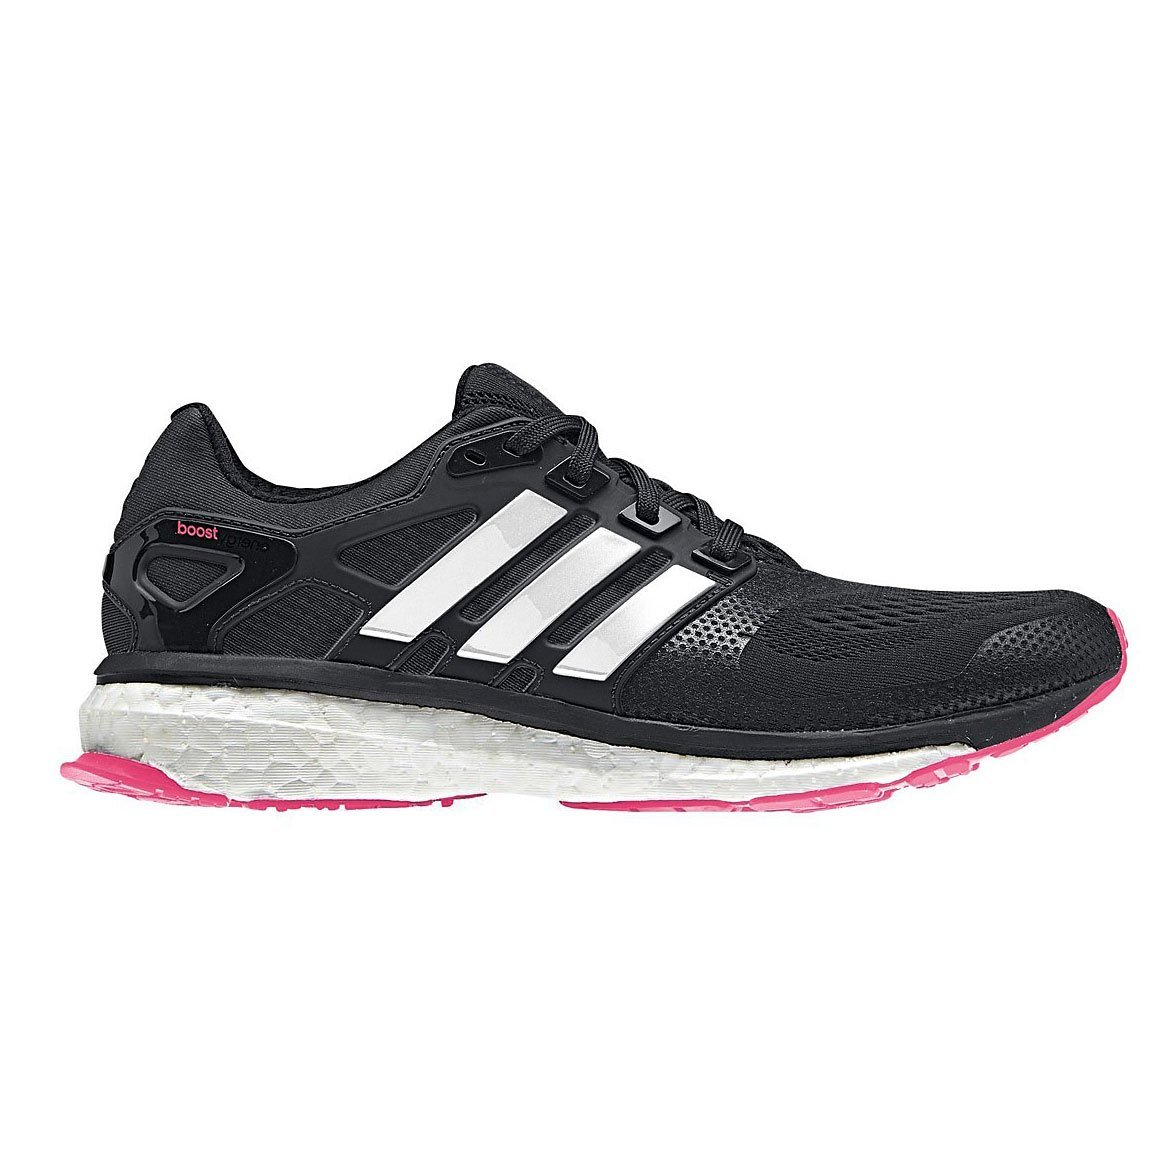 adidas performance energy boost 2 w running shoe. Black Bedroom Furniture Sets. Home Design Ideas